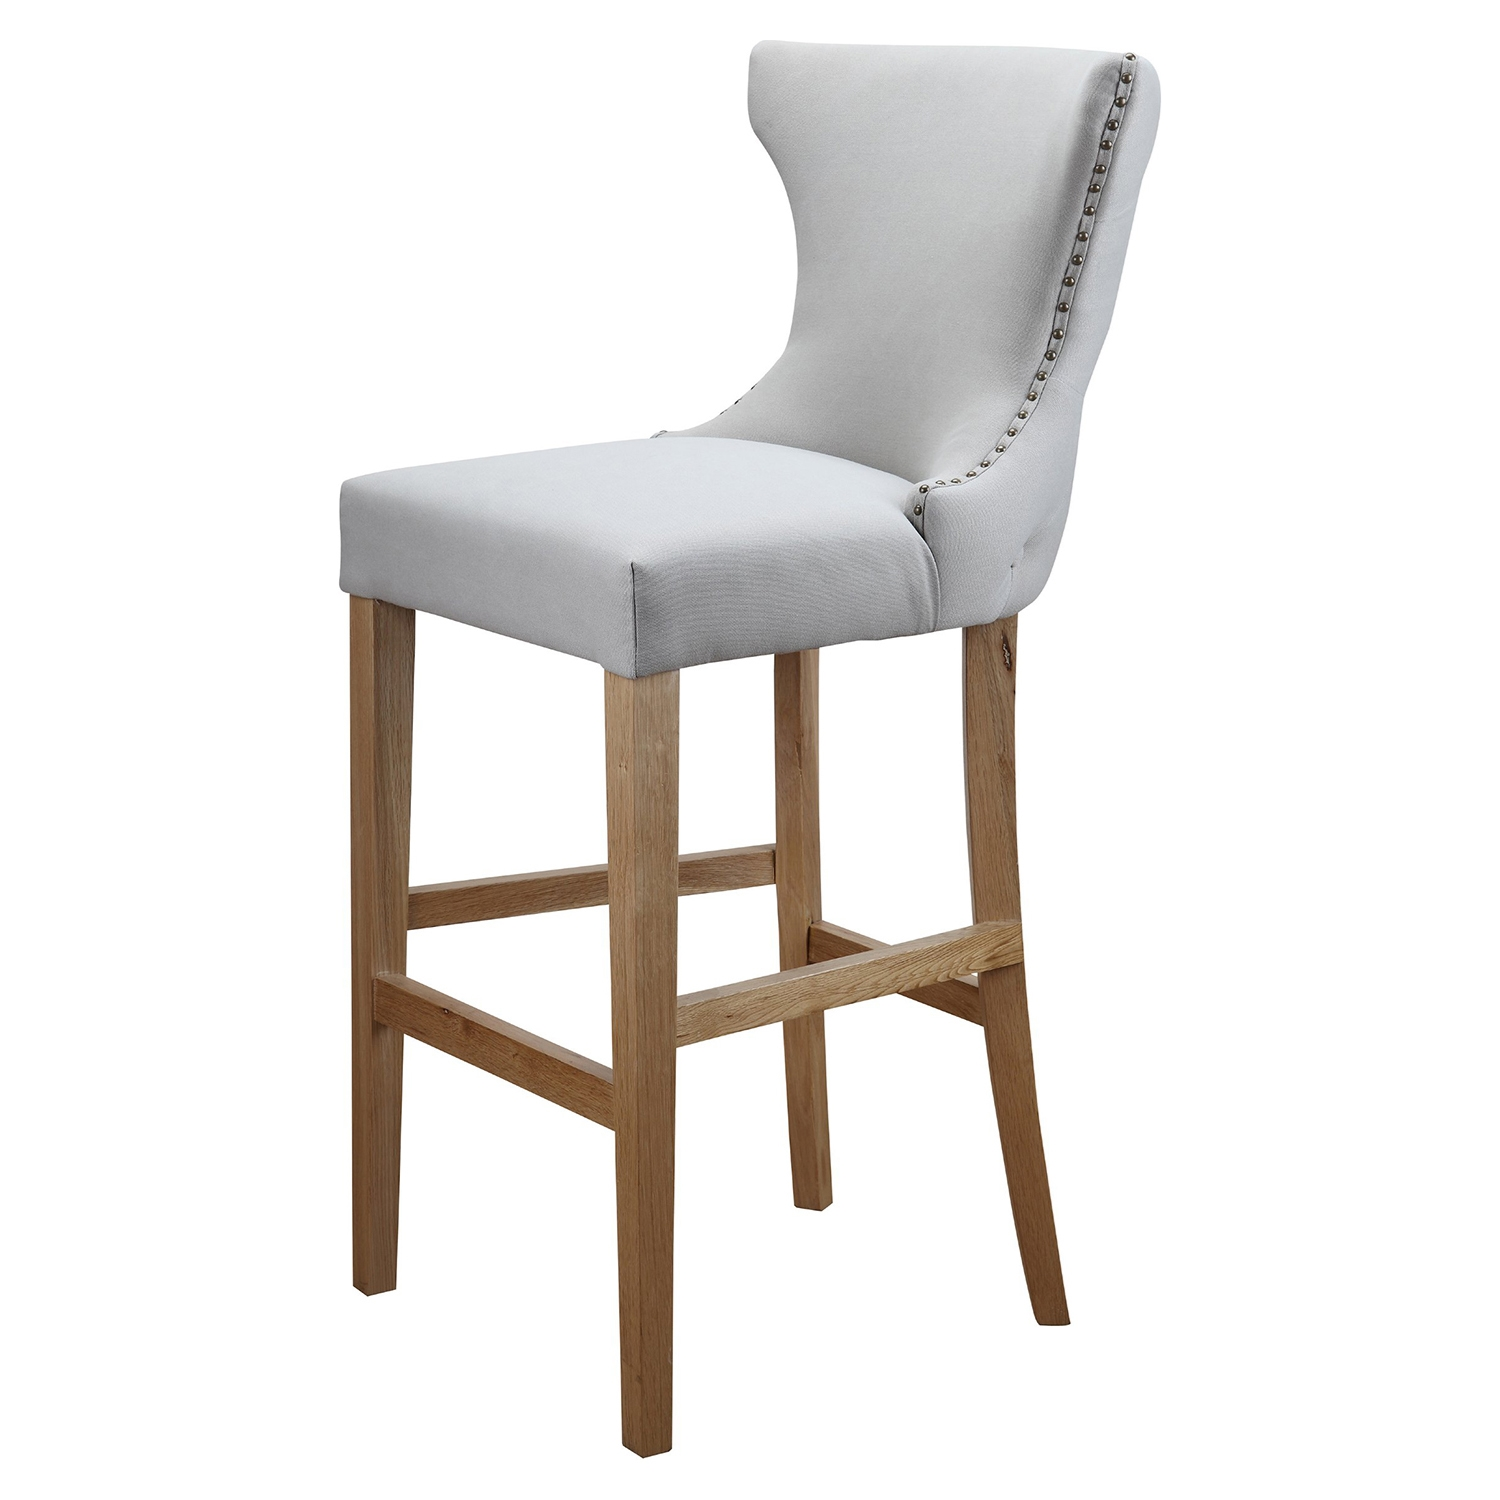 Bruna Counter Stool - Nailhead, Button Tufted, Cappuccino - MOES-ME-1021-14